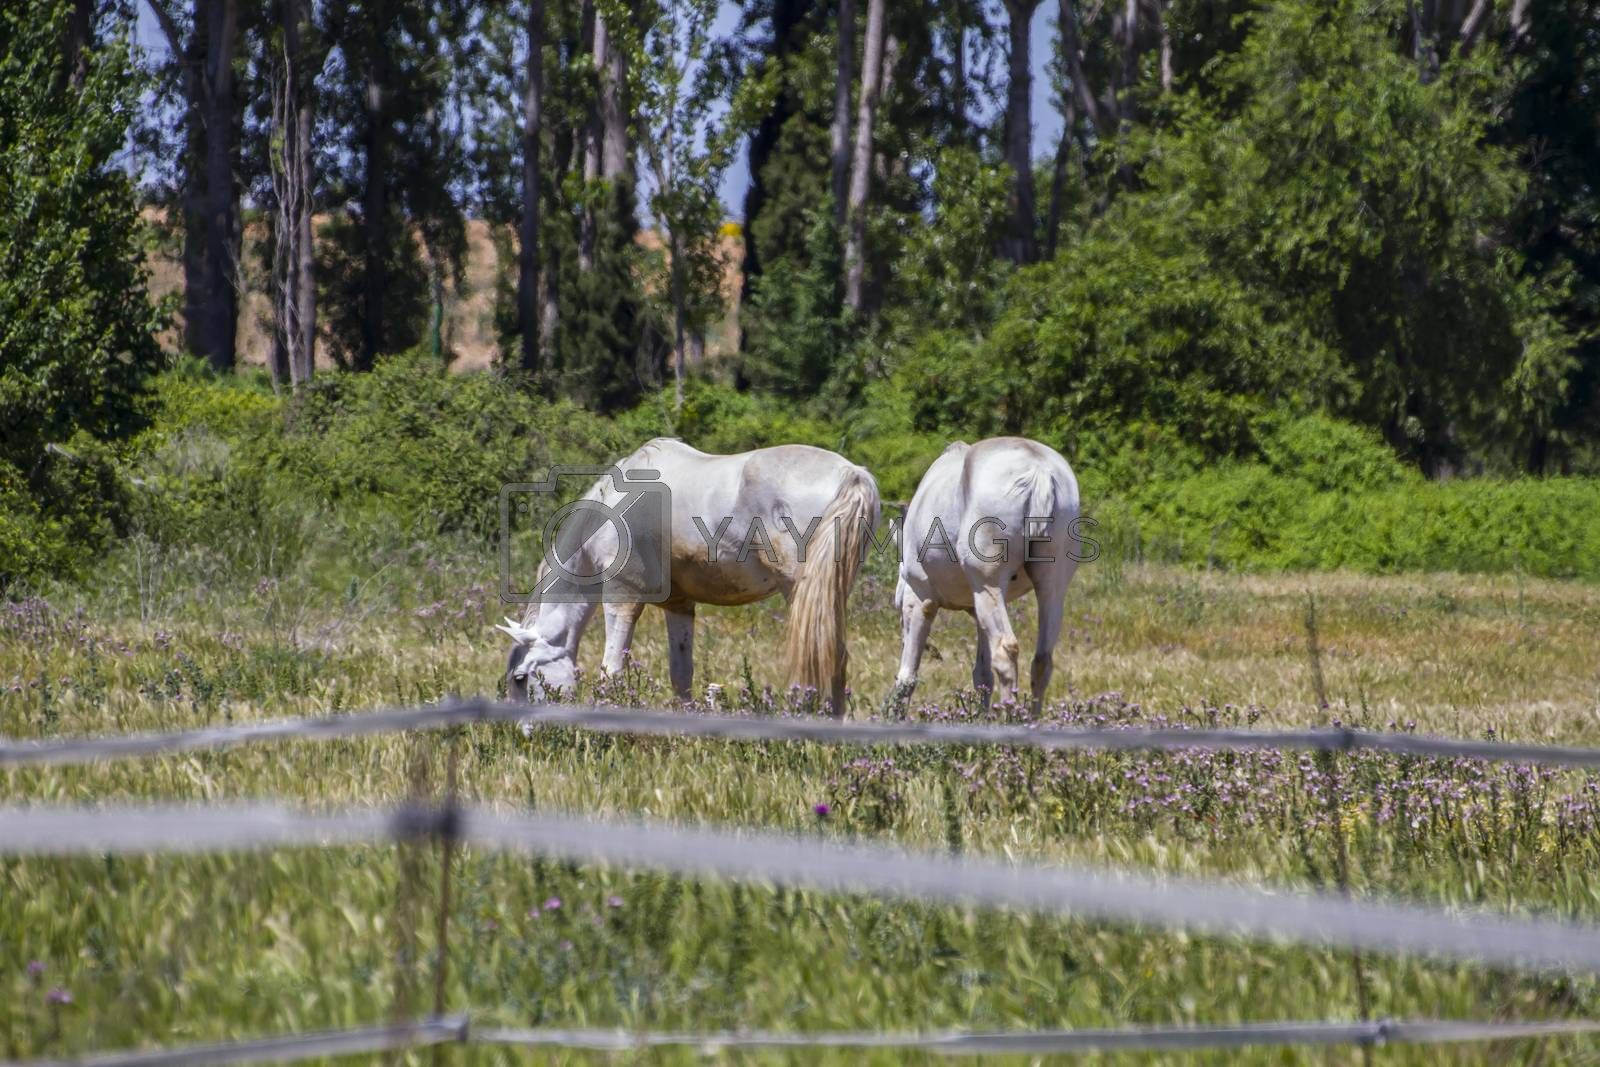 Royalty free image of group of horses grazing in a green pasture, spanish horses by FernandoCortes